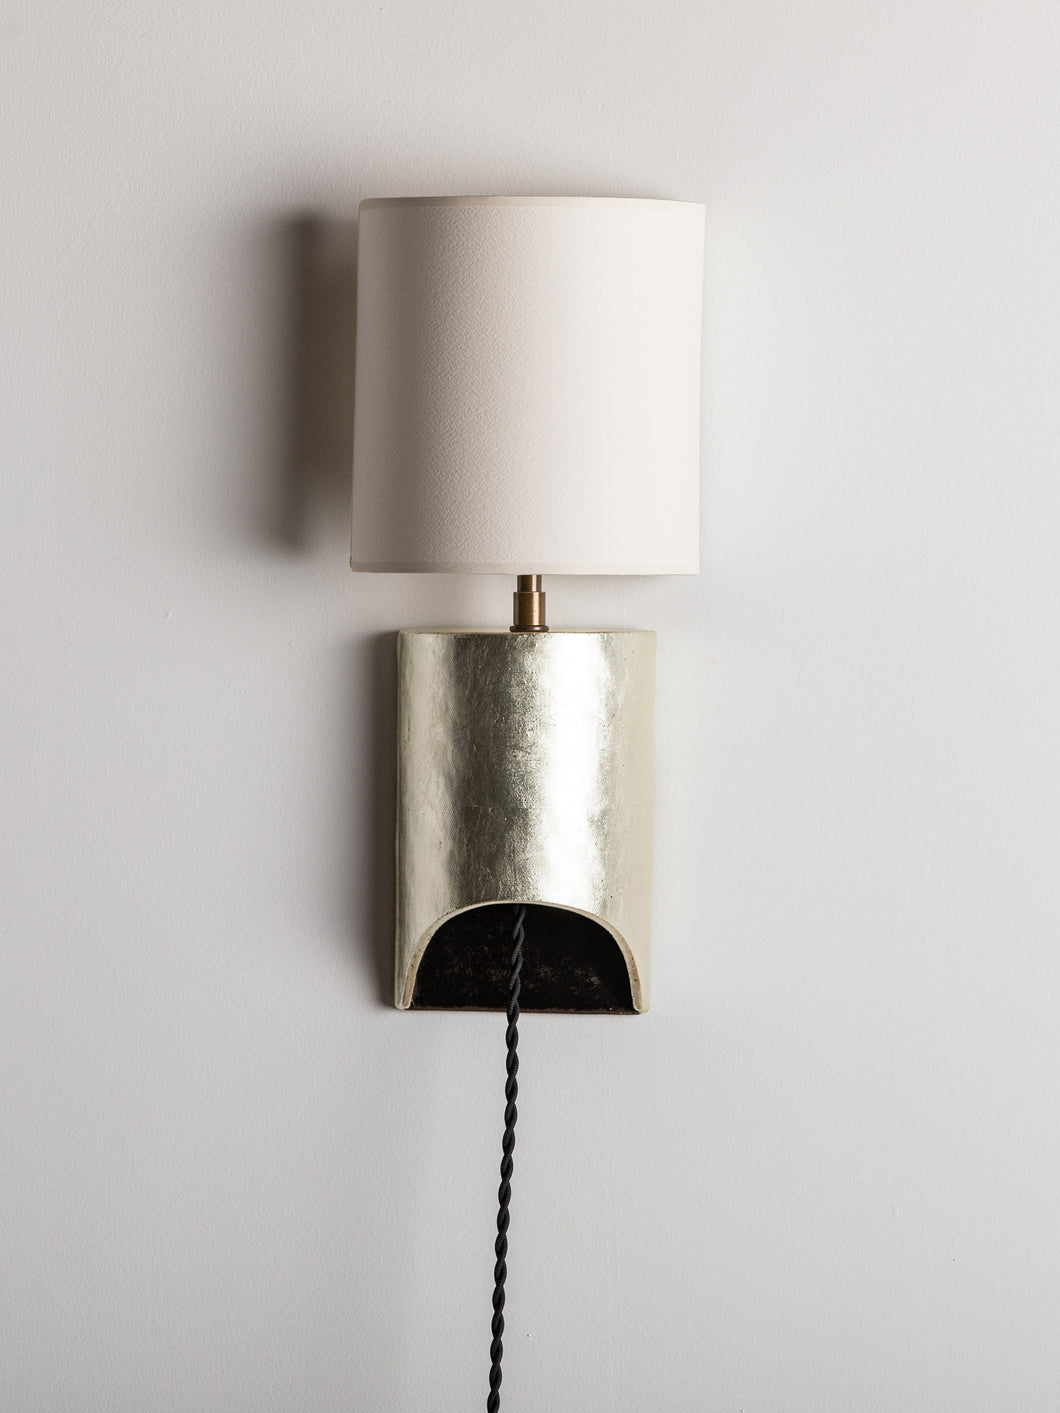 Patrick Sconce – Gilded